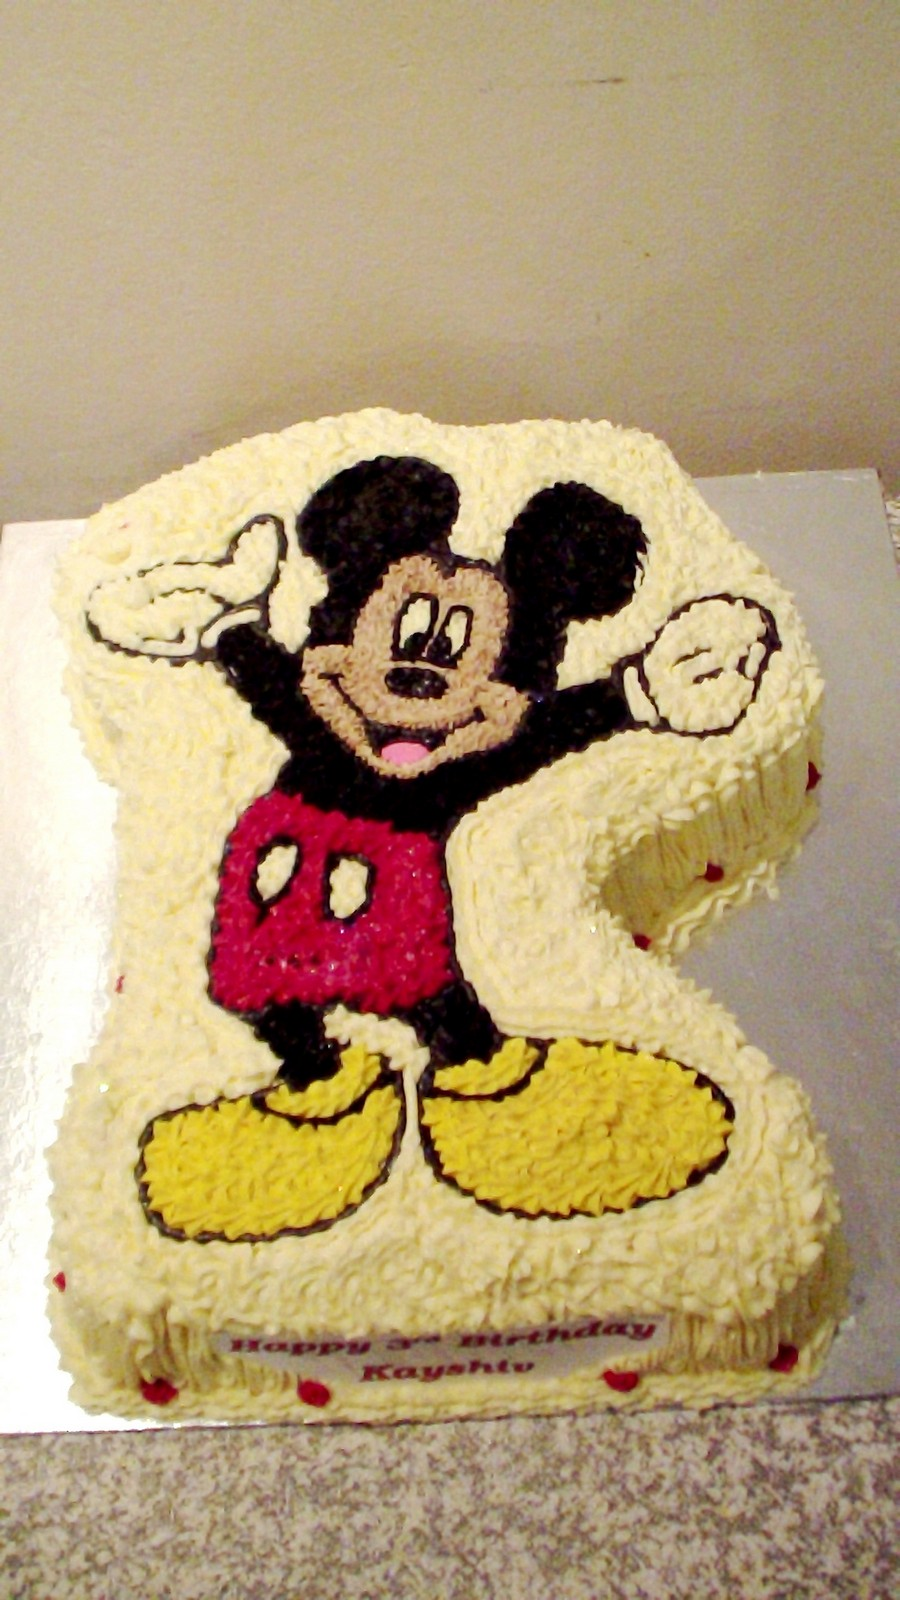 Design A Cake - Mickey & Minnie